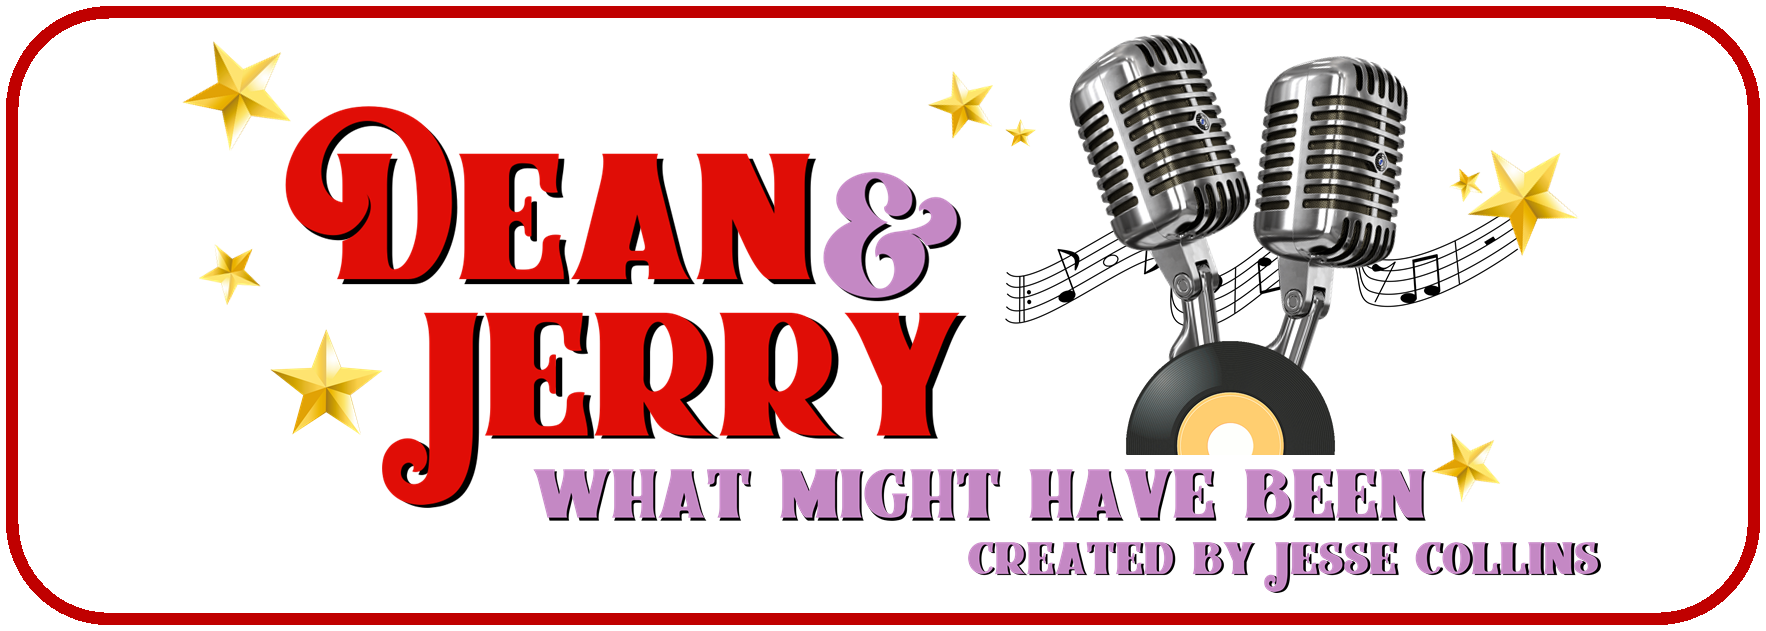 Promotional graphic for the production of Dean & Jerry playing at the Opera House July 24 - August 16, 2019